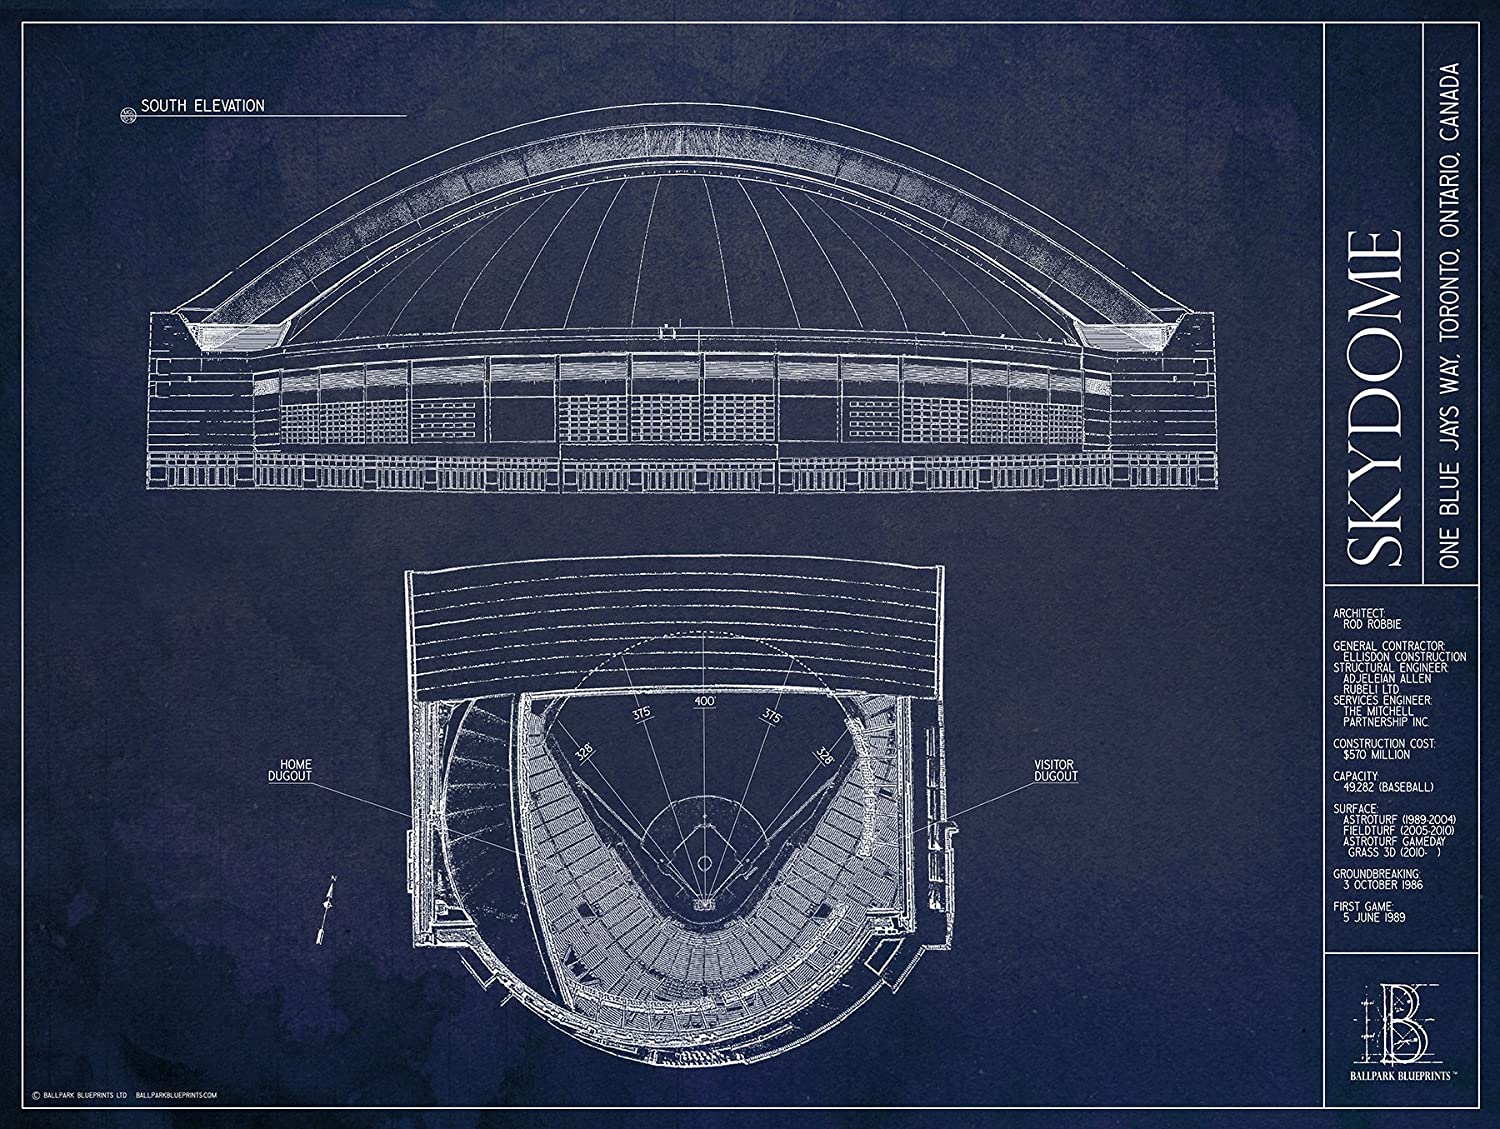 Ballpark Blueprints SkyDome 18x24 Unframed Print